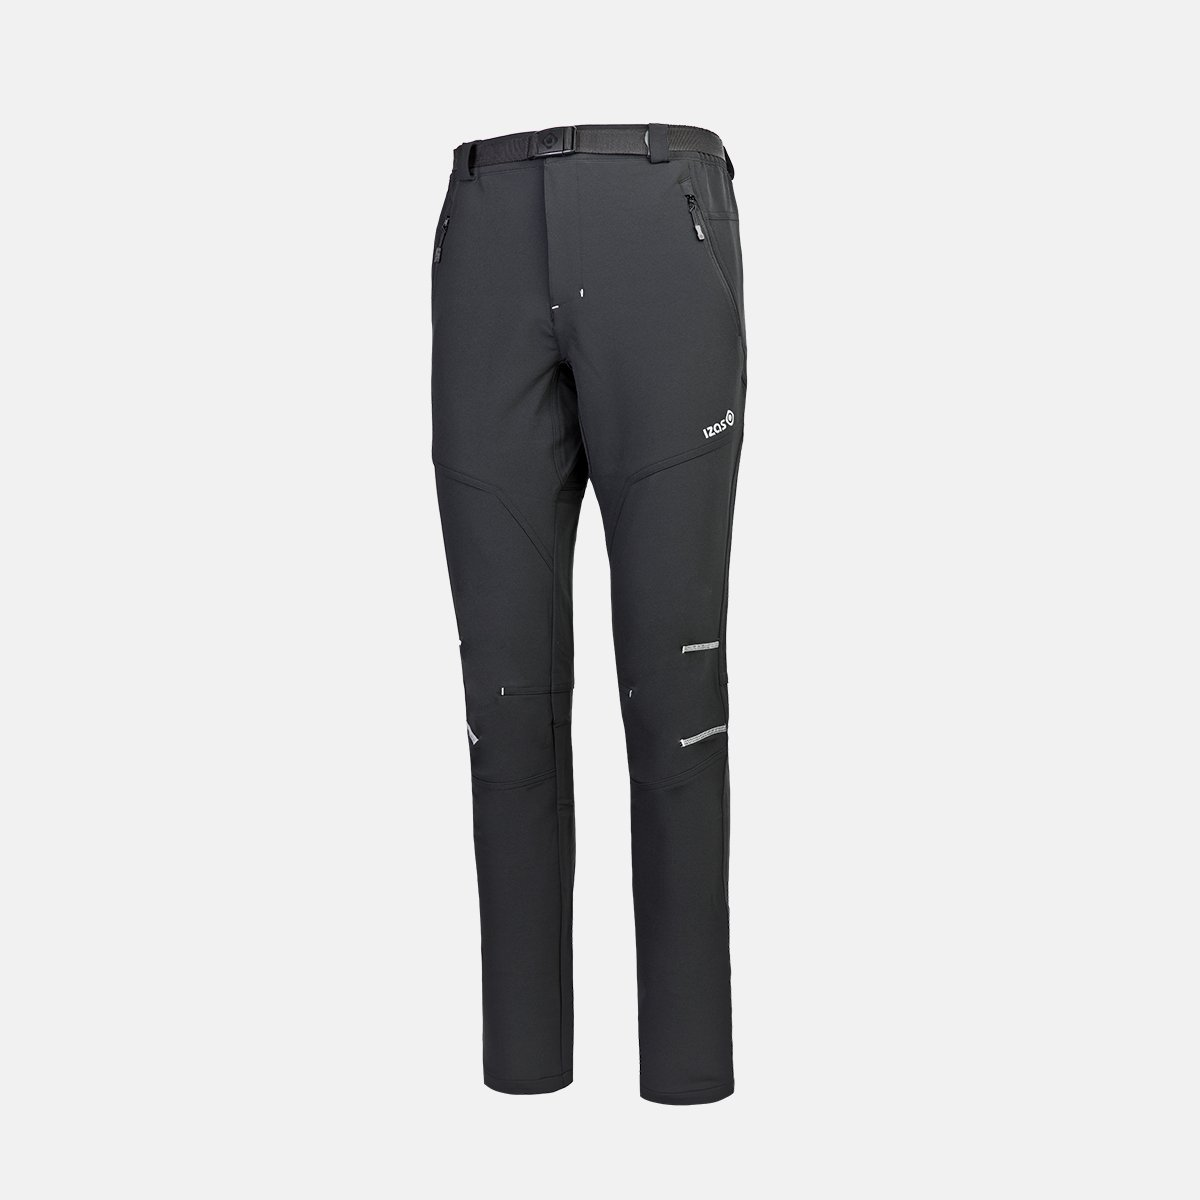 PANTALON LARGO ASGARD M FW 92% POLYESTER 8% ELASTANE 240-250 GR SLIM FIT MOUNT STRETCH WATER REPELLENT BREATHABLE BLACK/SILVER